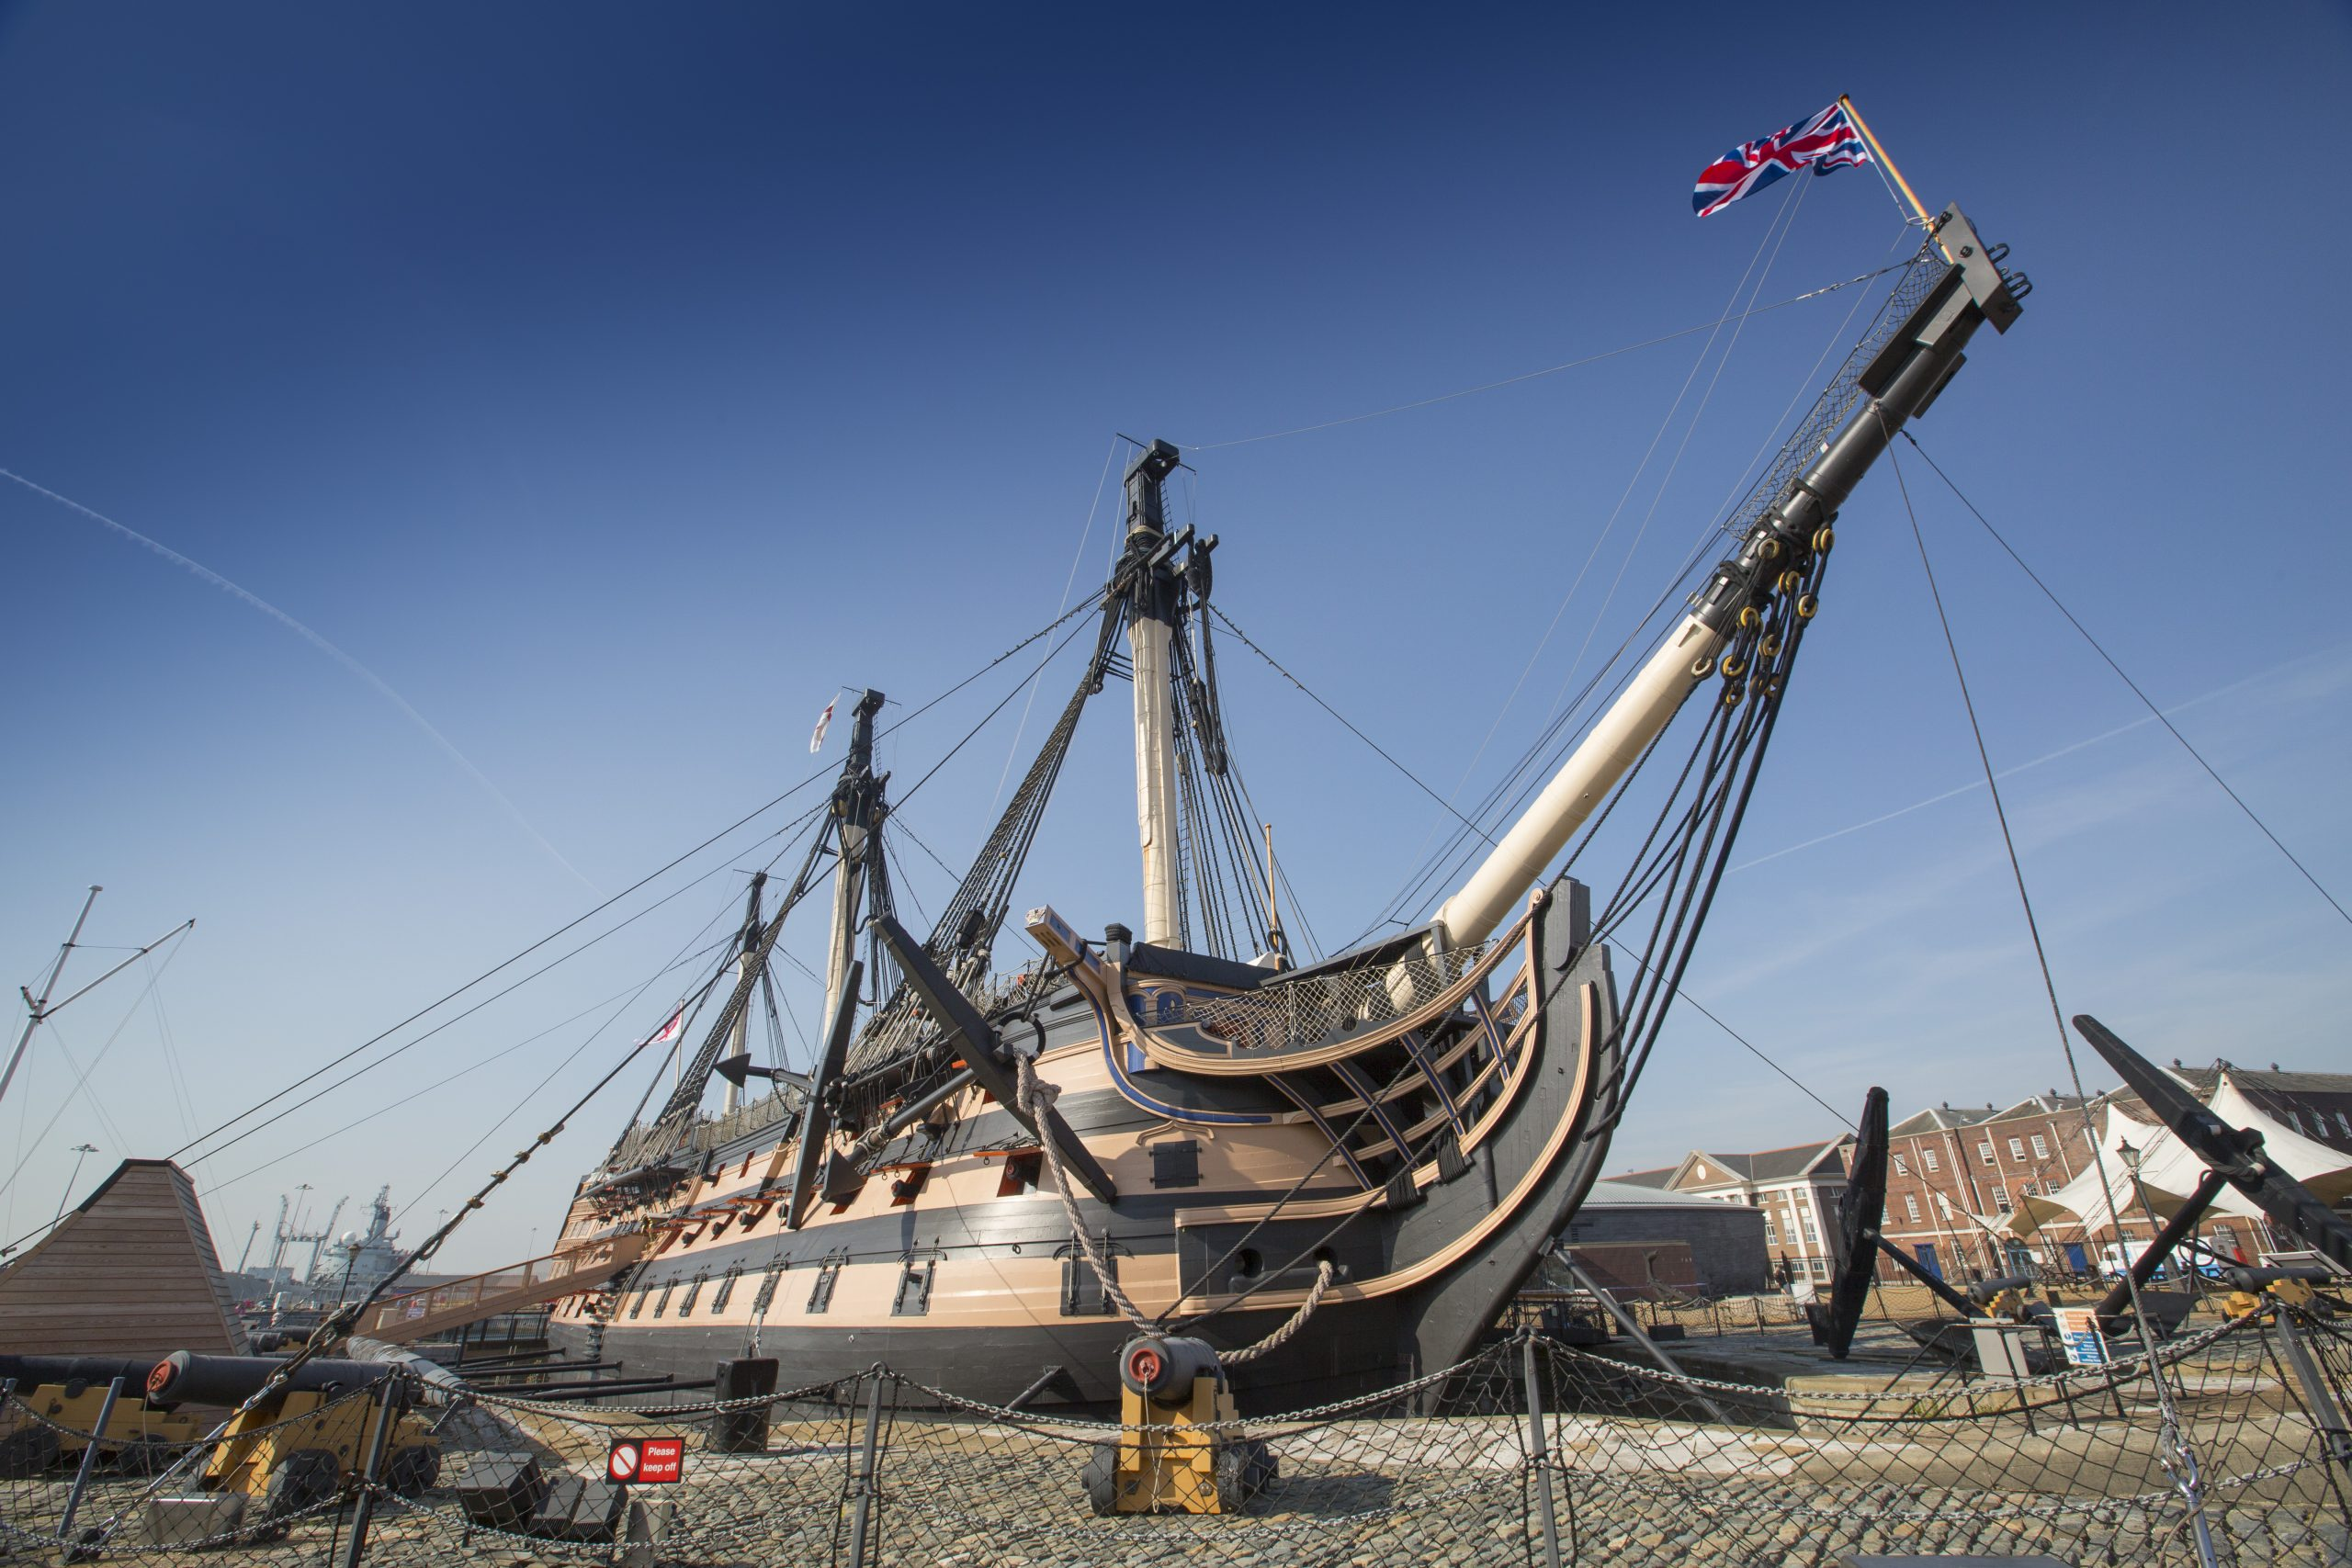 HMS Victory, The National Museum of The Royal Navy, The Mary Rose, Portsmouth Historic Dockyard, museum